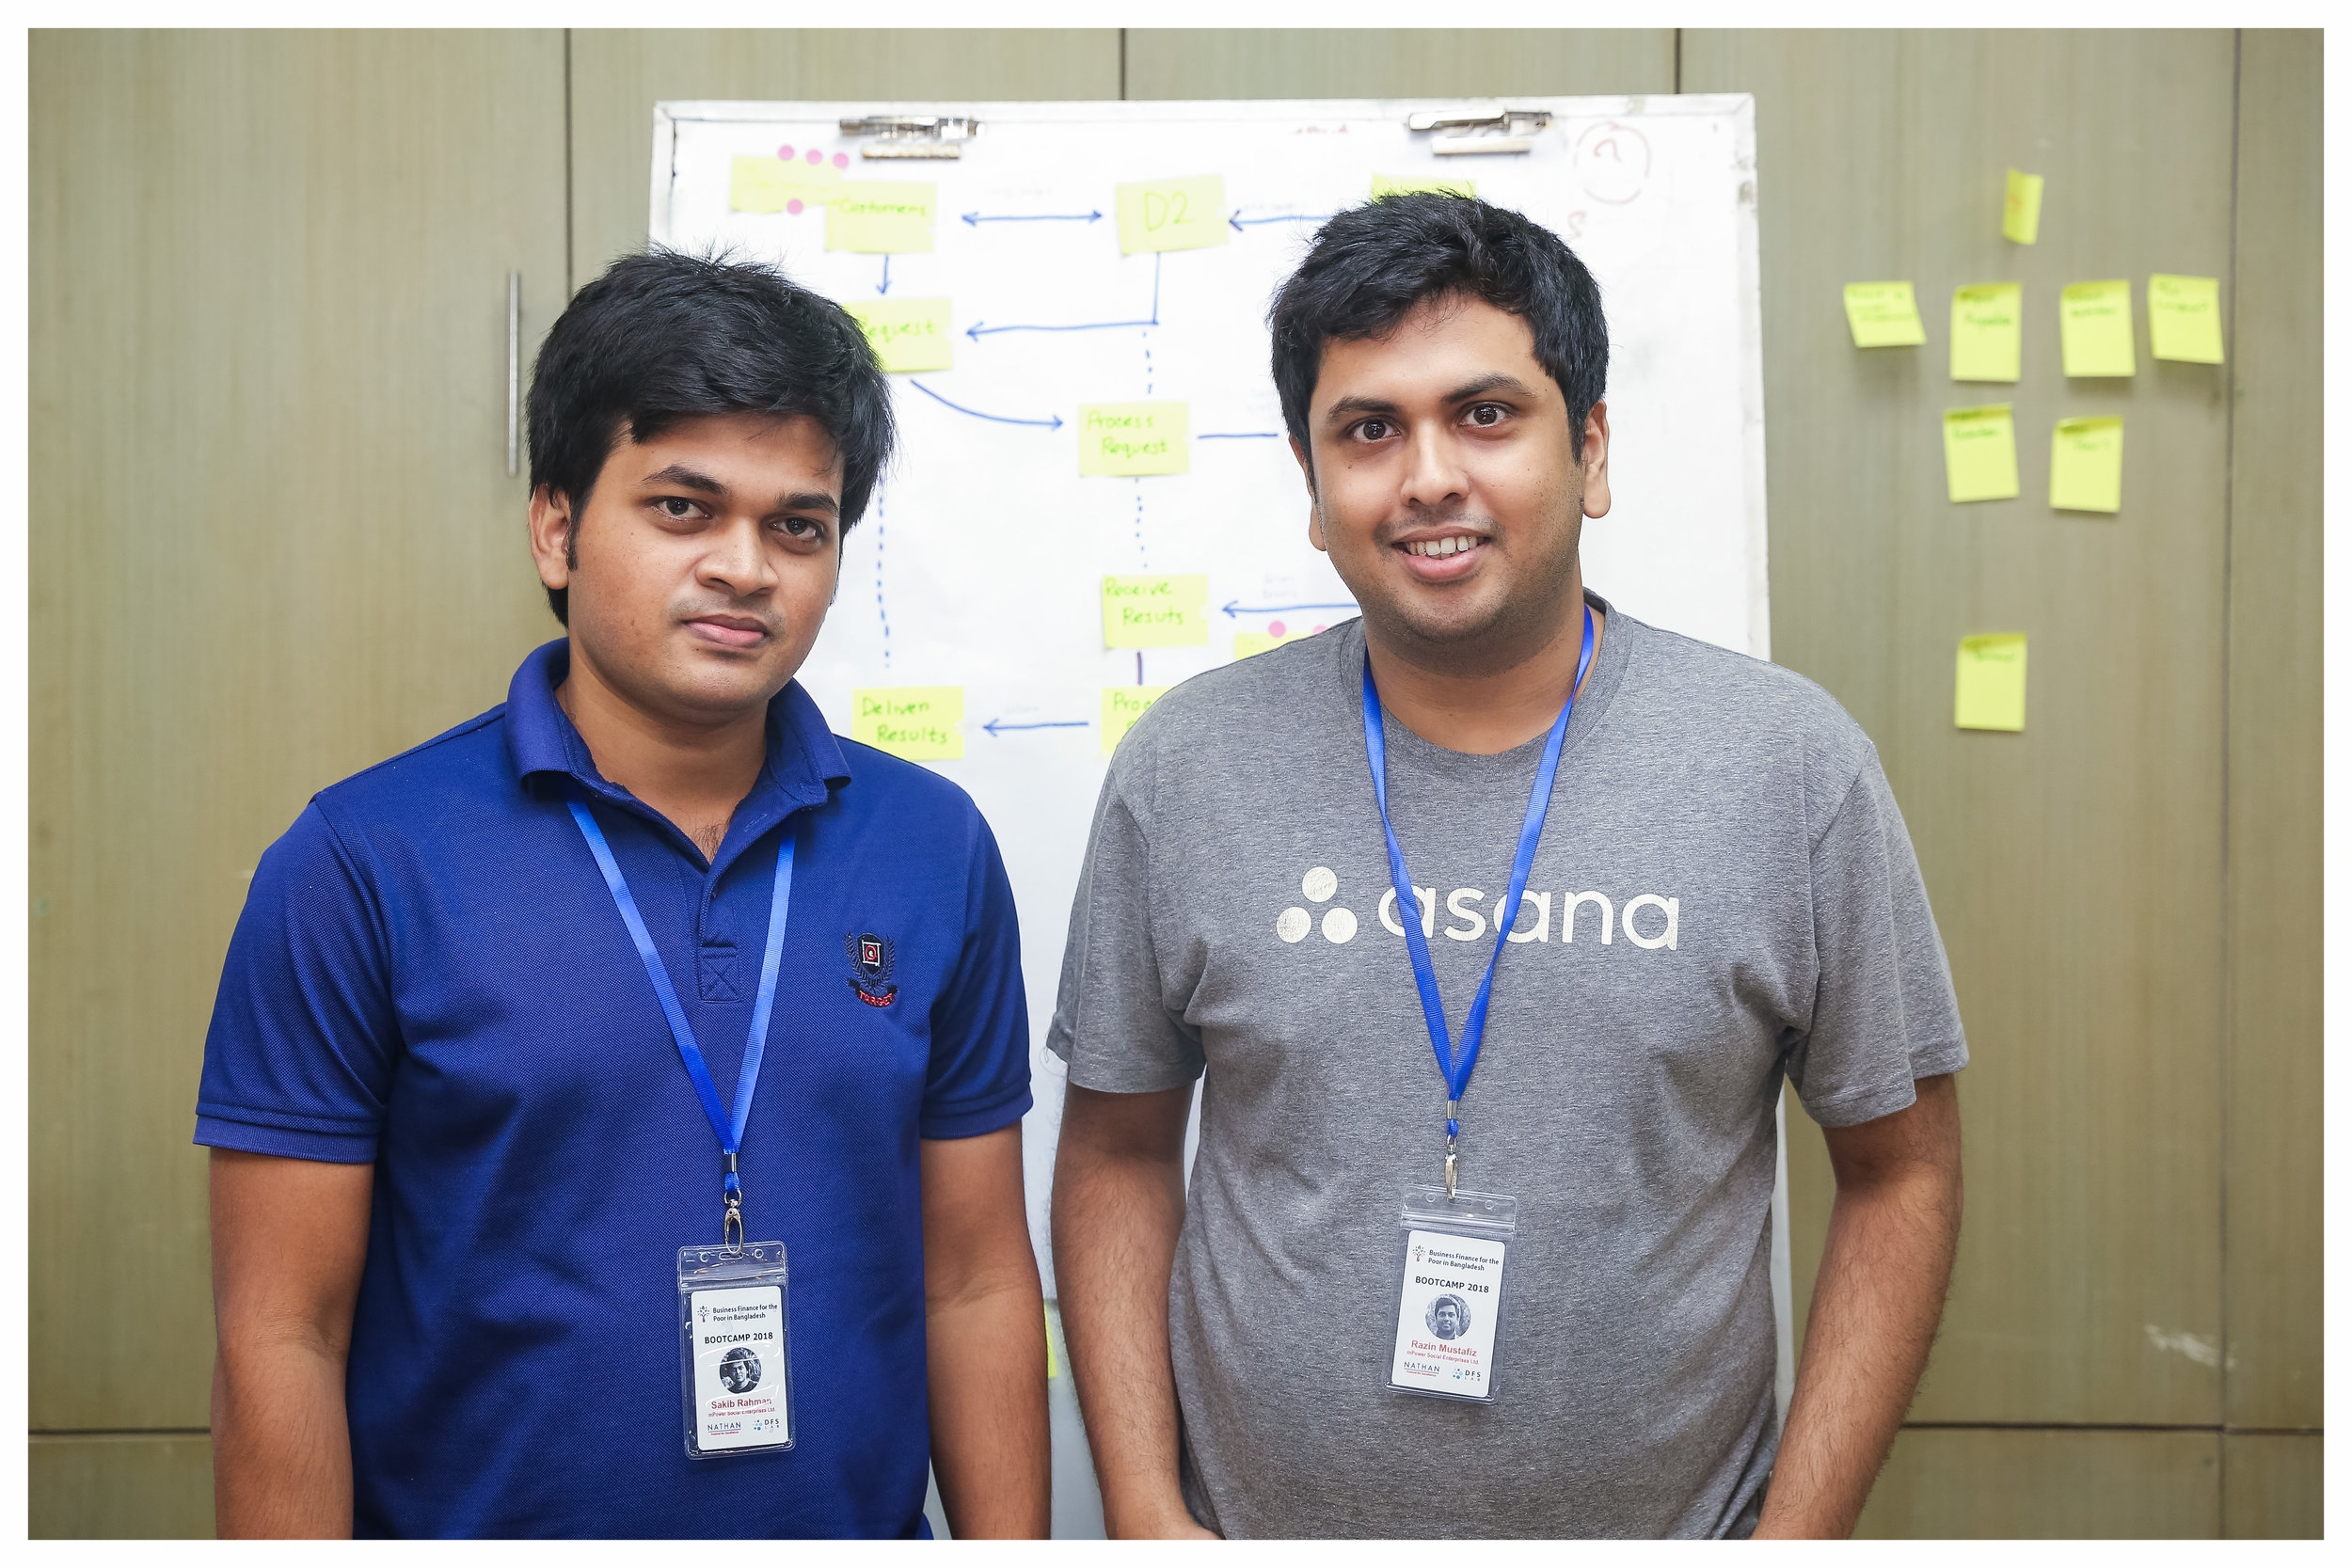 """D2 - """"The Bootcamp was very intense and we learned a lot. D2 strives to connect businesses looking for reliable market data with a network of agents around the country who get paid to collect that data. These agents are mostly unemployed youth from low-income backgrounds. We hope we can take the learnings from the sprint process, identify quick solutions and implement them for creating better opportunity for the youth."""""""